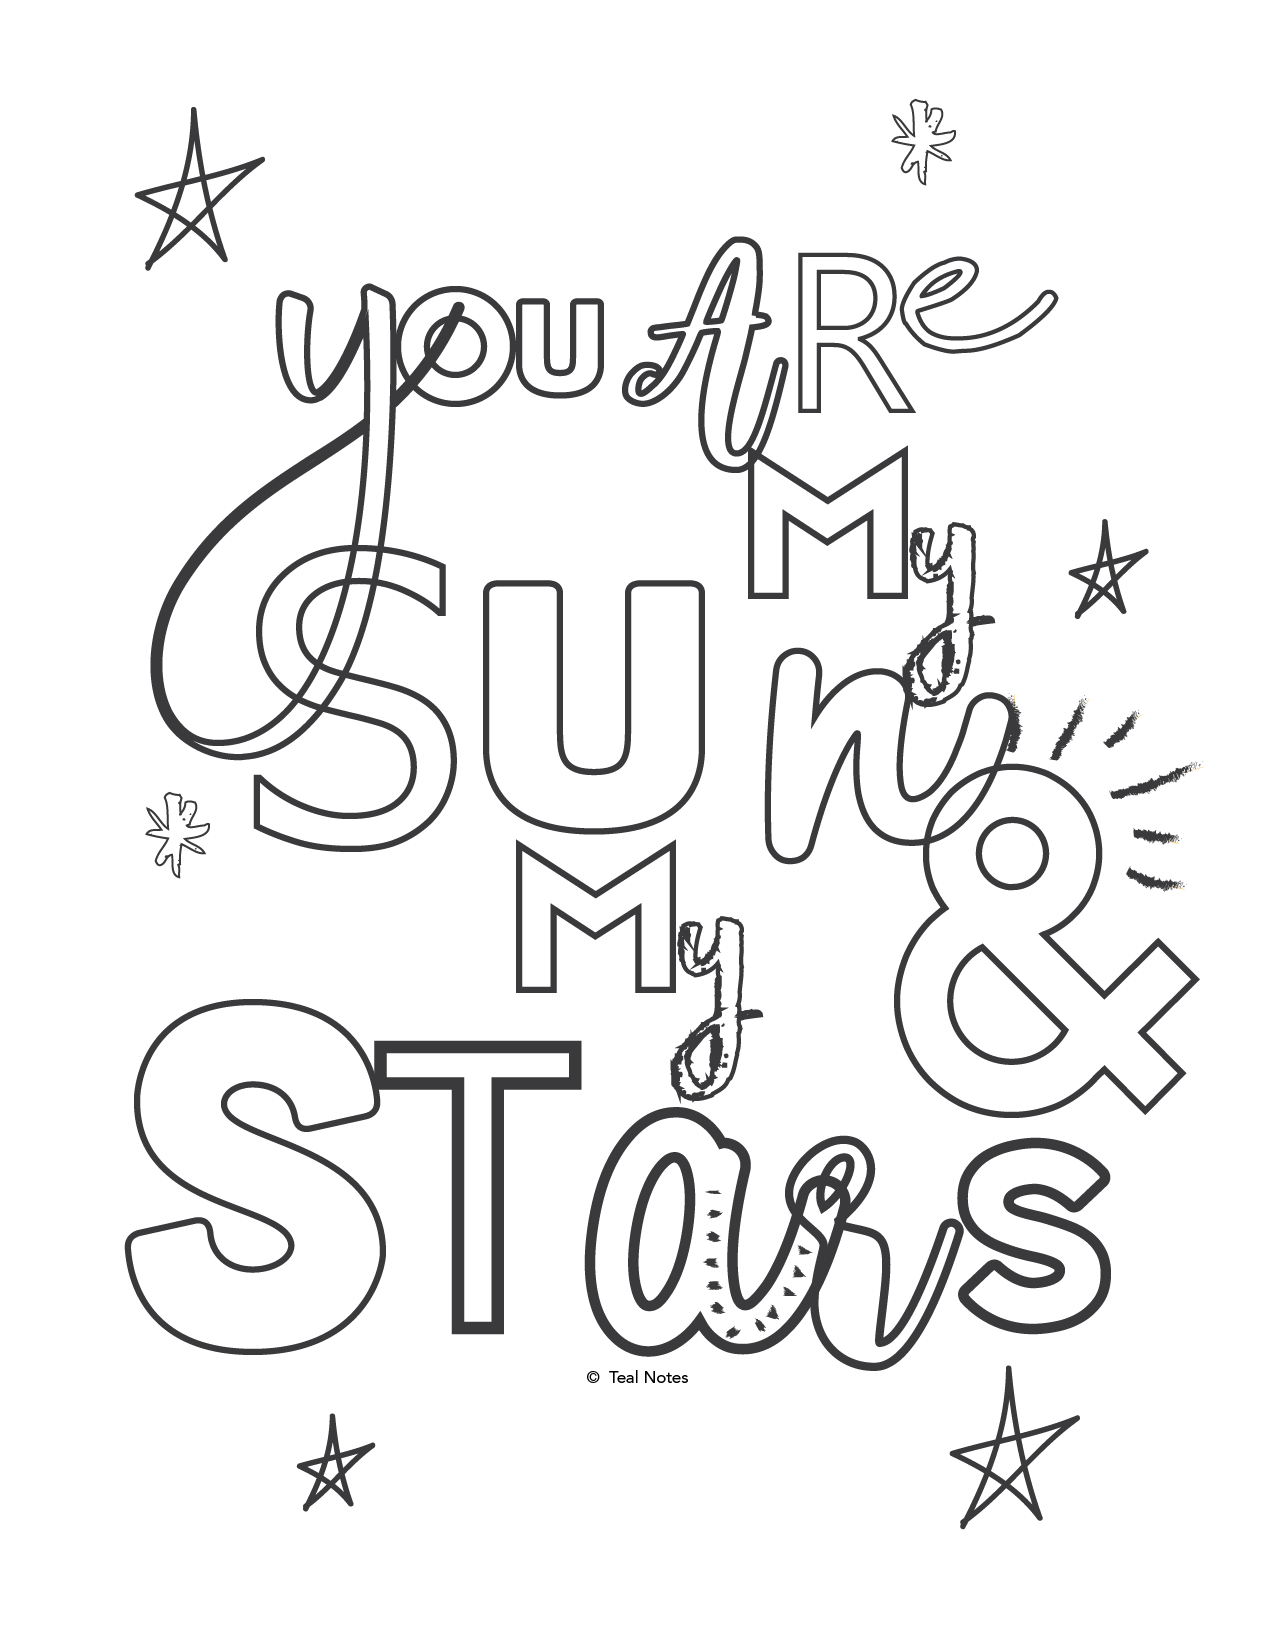 5 Quote Coloring Pages You Can Print And Color On Your Free Time In 2020 Quote Coloring Pages Coloring Pages For Grown Ups Easy Coloring Pages